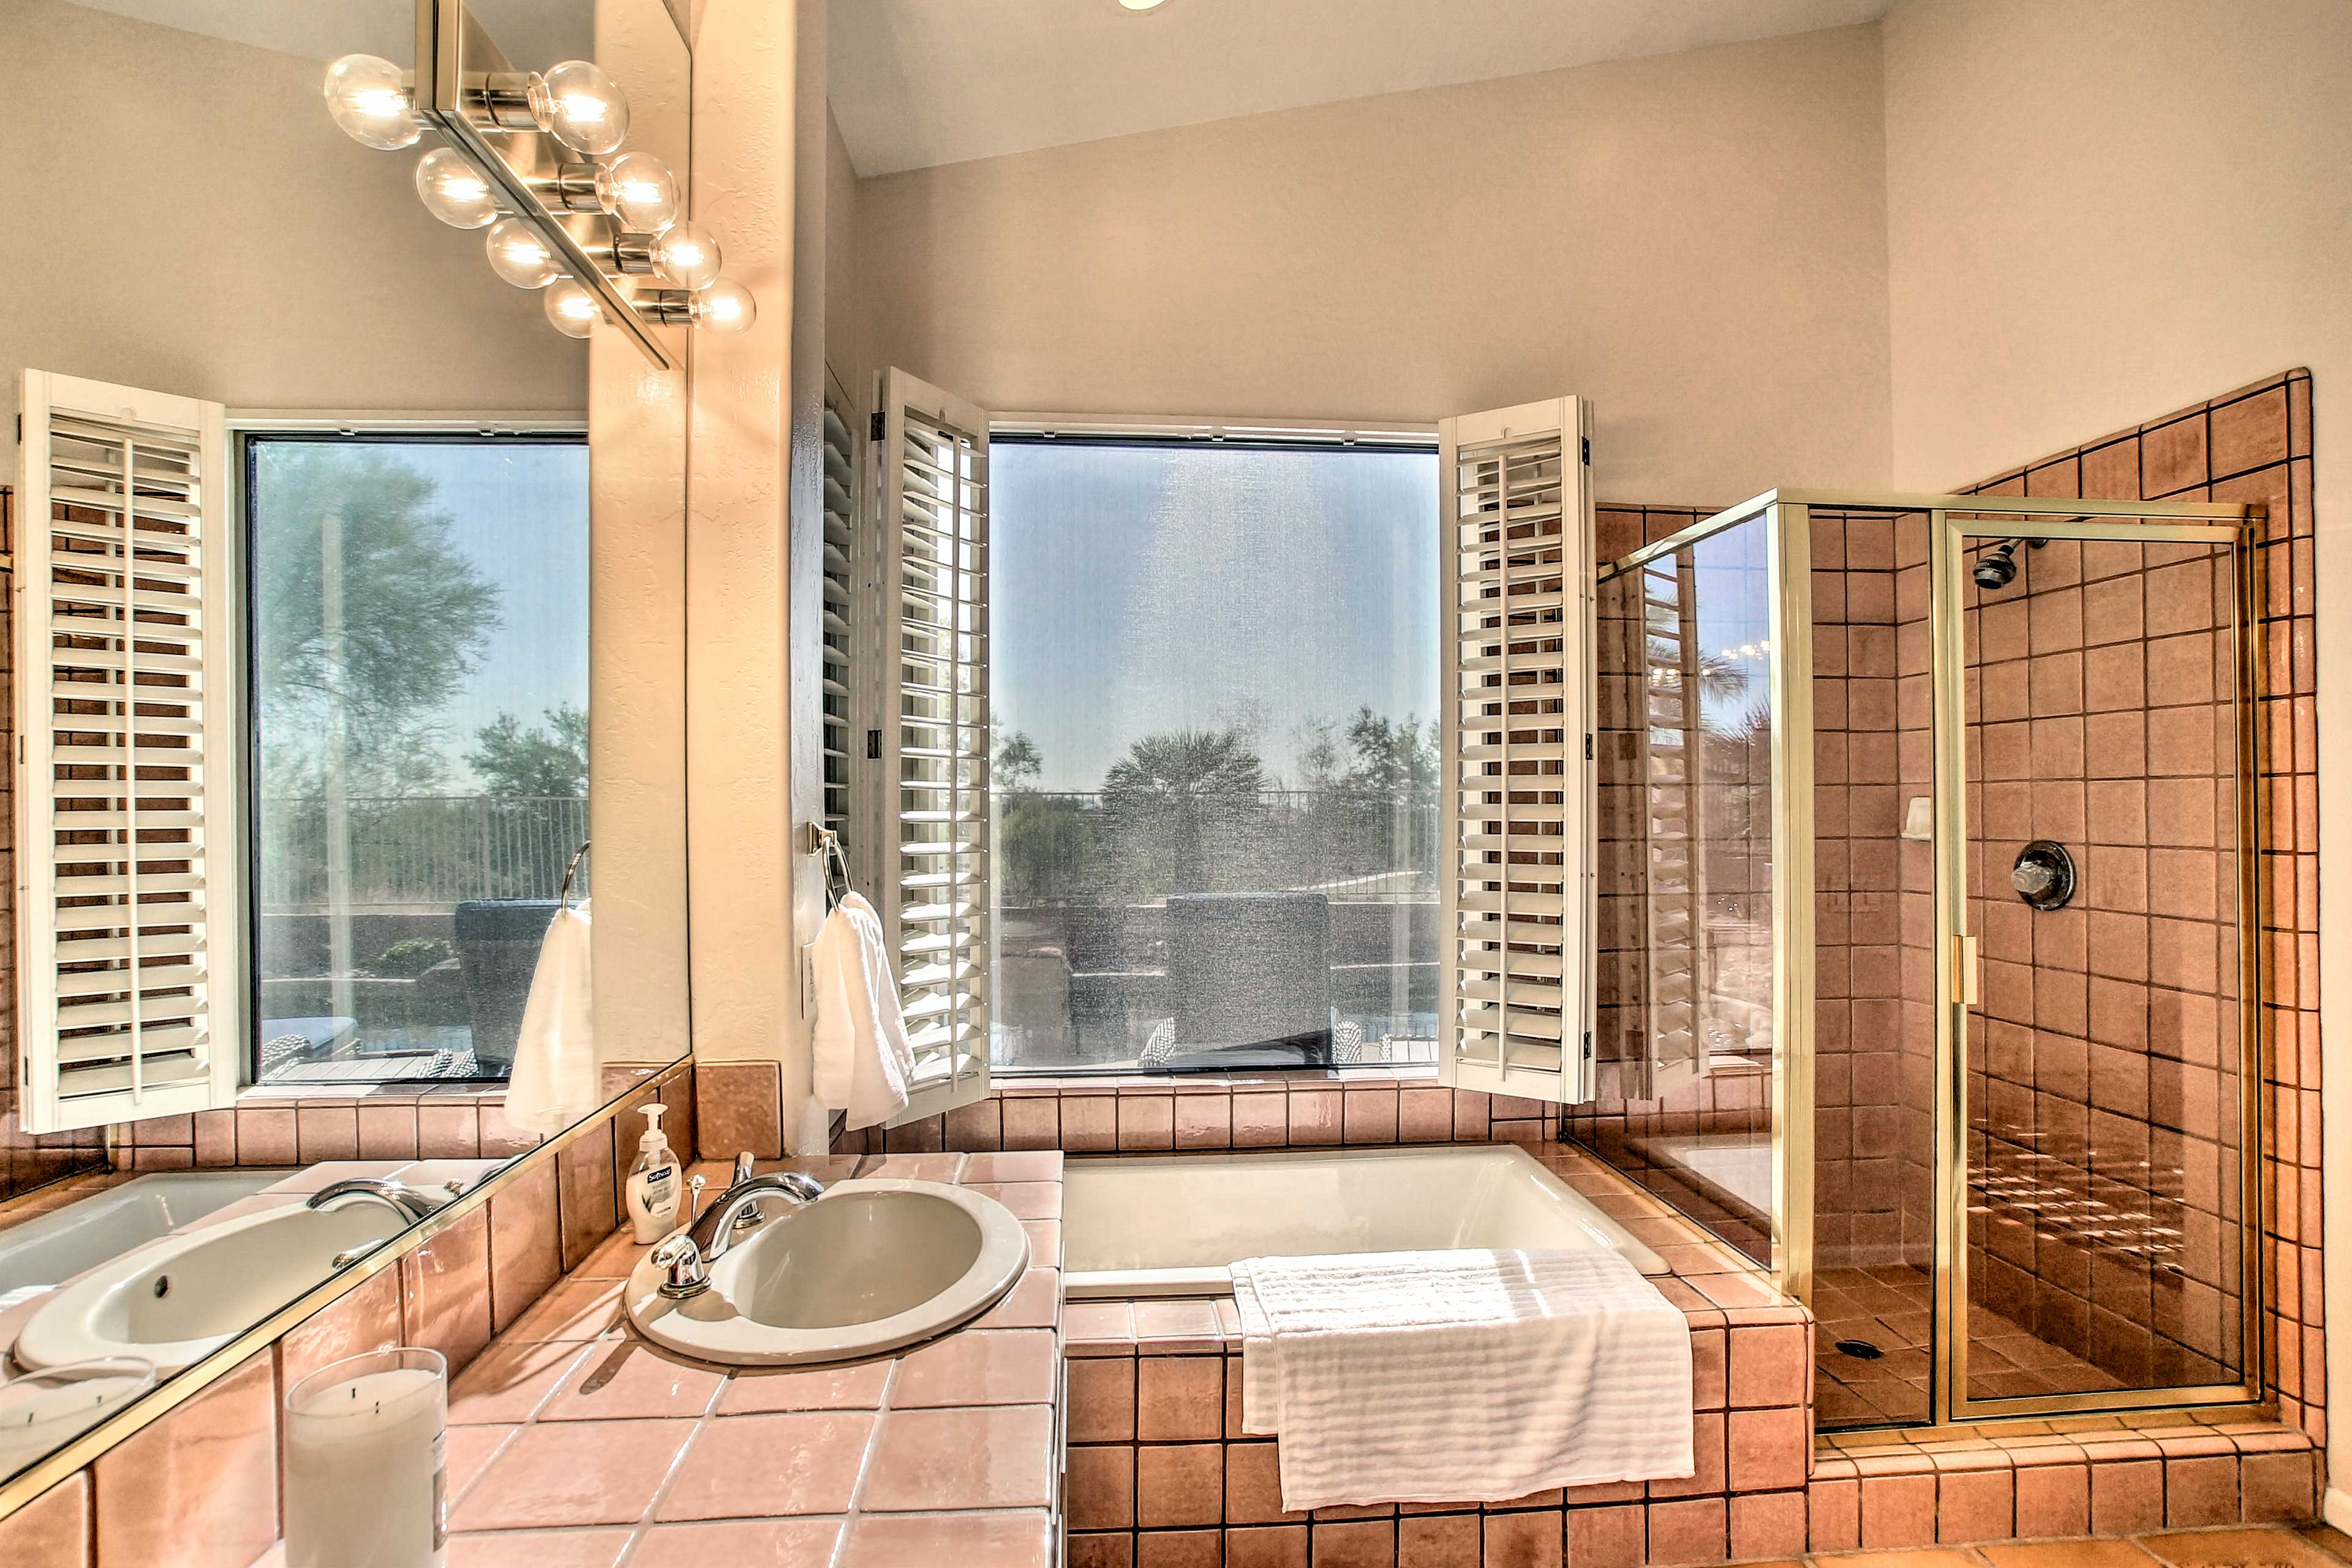 The master bathroom has a walk-in shower and bathtub with pool views.